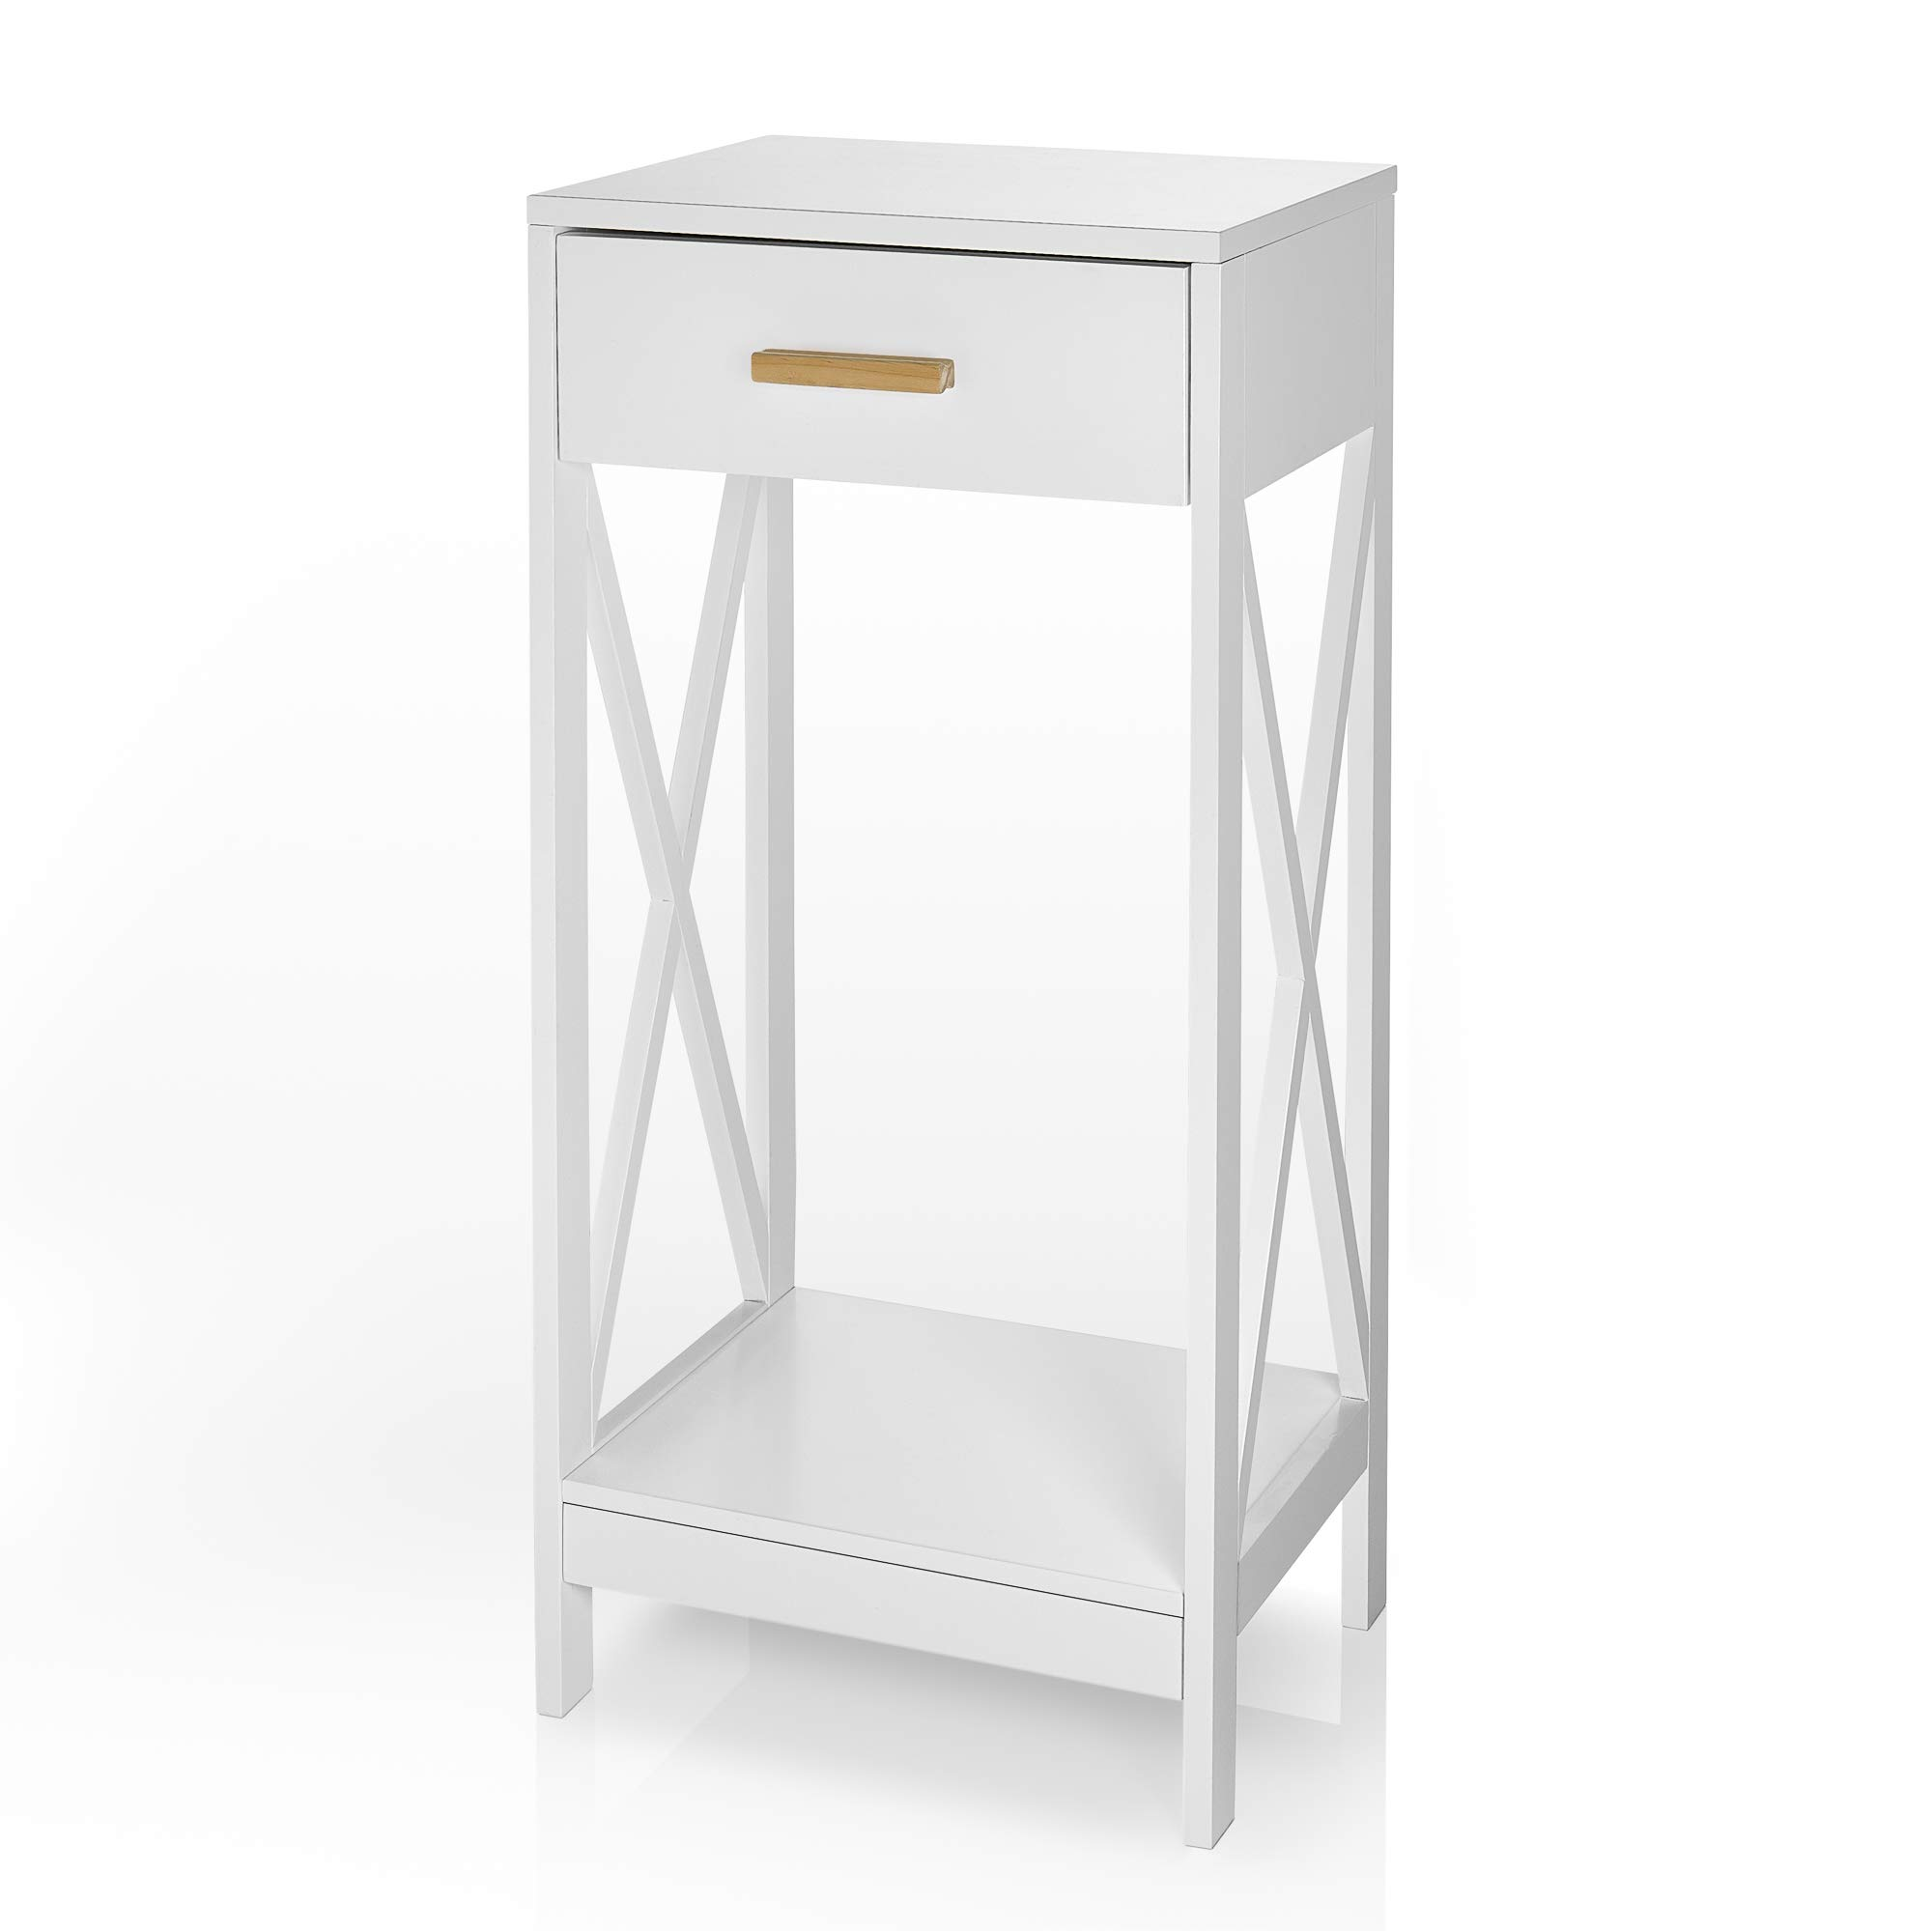 Prosumer's Choice Modern Side Table and Nightstand w/ Single Drawer Storage